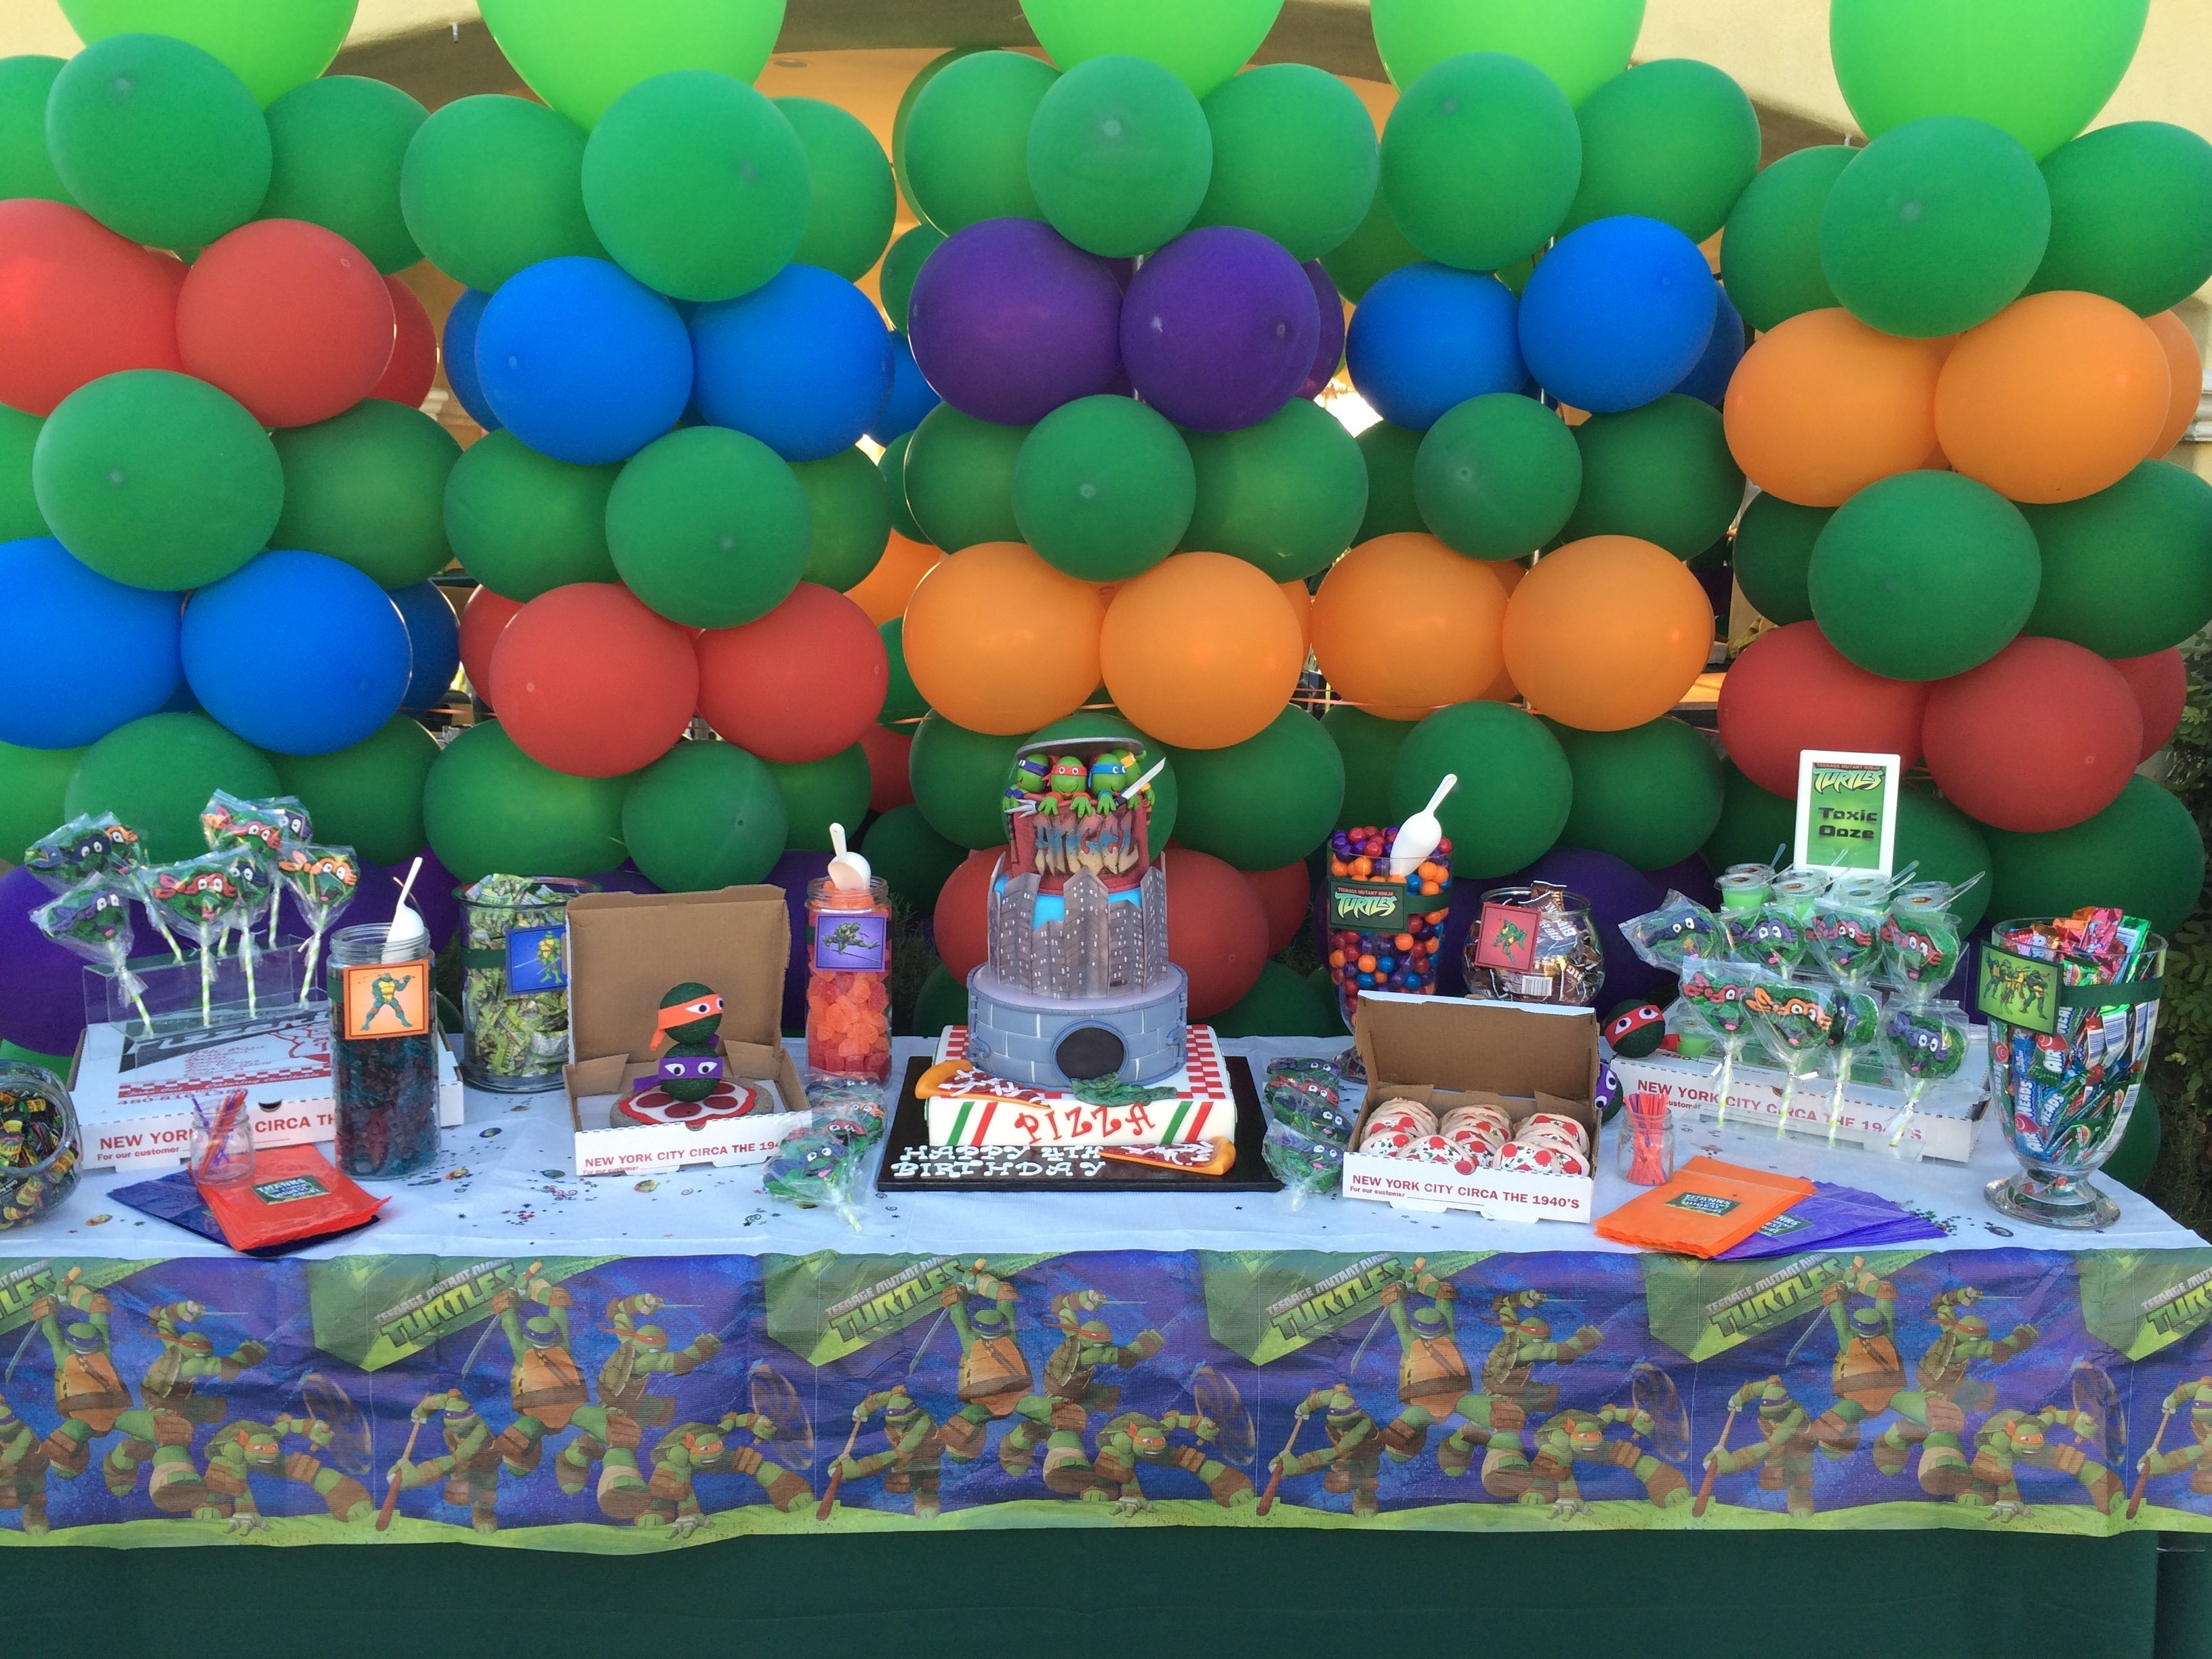 10 Pretty Ninja Turtles Theme Party Ideas teenage mutant ninja turtles birthday party ideas resourceful 2